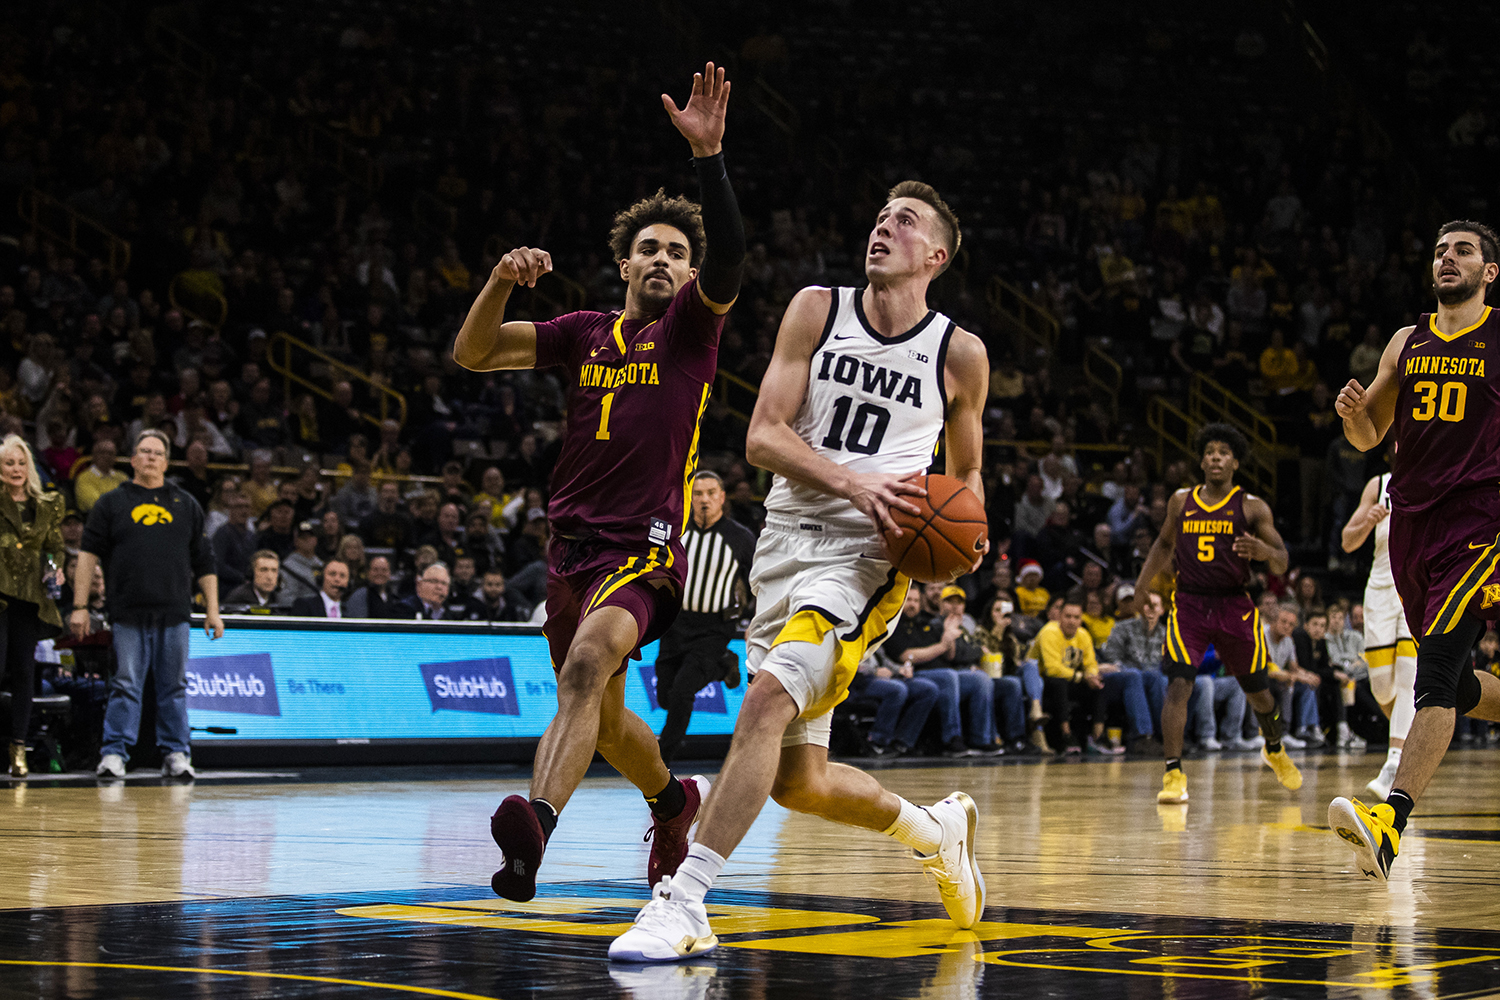 Iowa guard Joe Wieskamp drives the ball during the men's basketball game against Minnesota at Carver-Hawkeye Arena on Monday, December 9, 2019. The Hawkeyes defeated the Gophers 72-52. Wieskamp scored 8 of his 15 attempted shots.